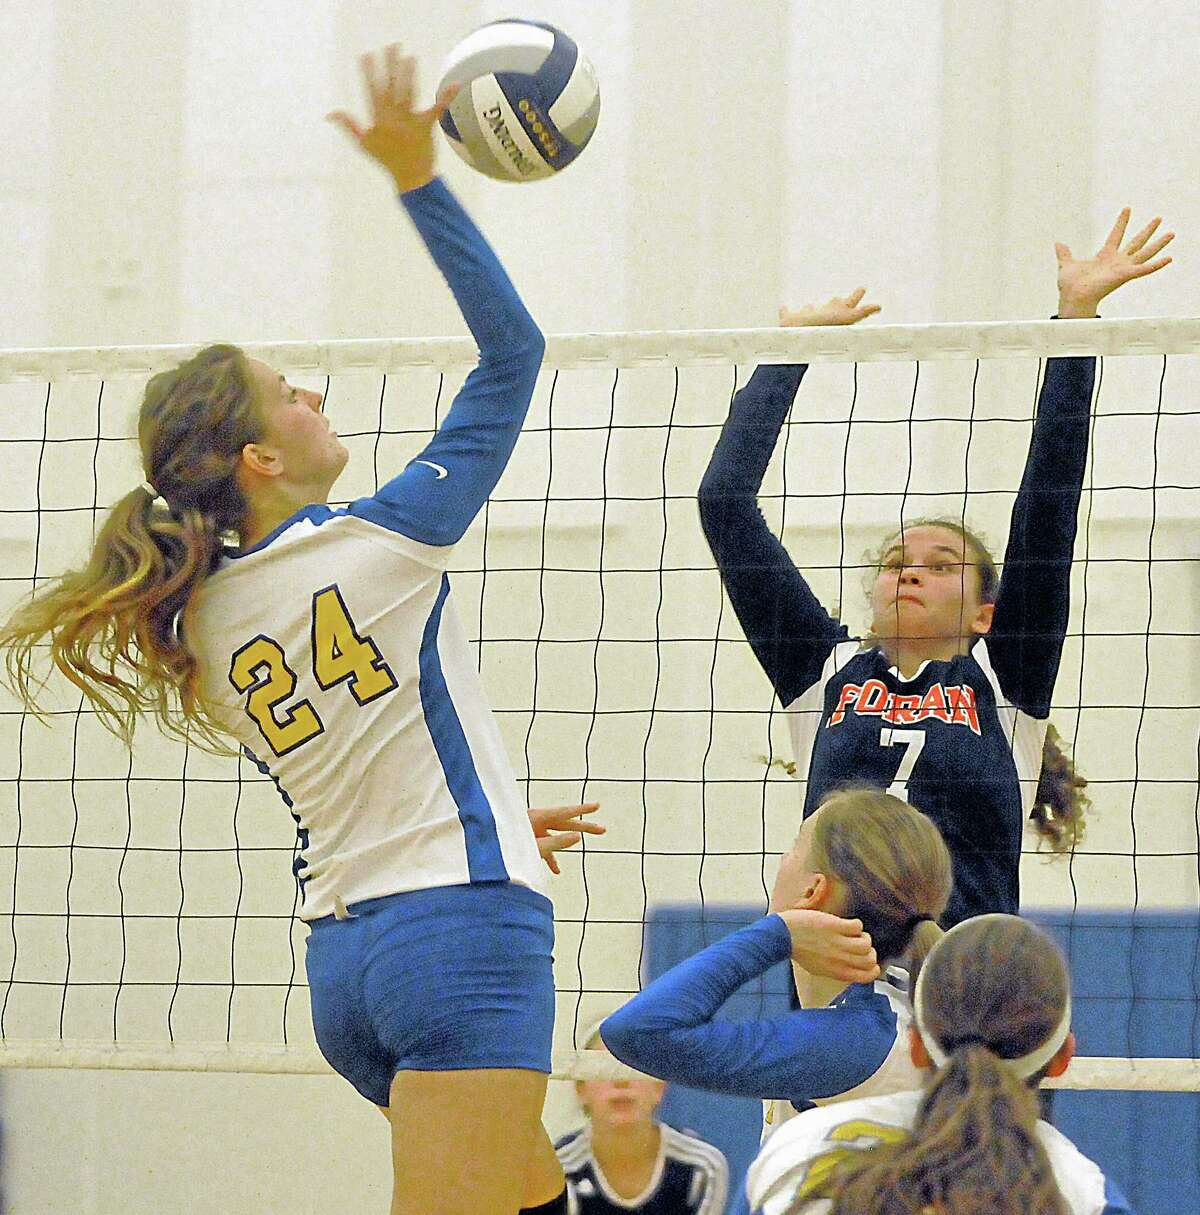 Mercy senior Morgan Cahill spikes the ball at Foran's Janae Owen in the second set against Foran. Mercy won all three games, 25-17, 25, 14, 25-23 Monday night at home.